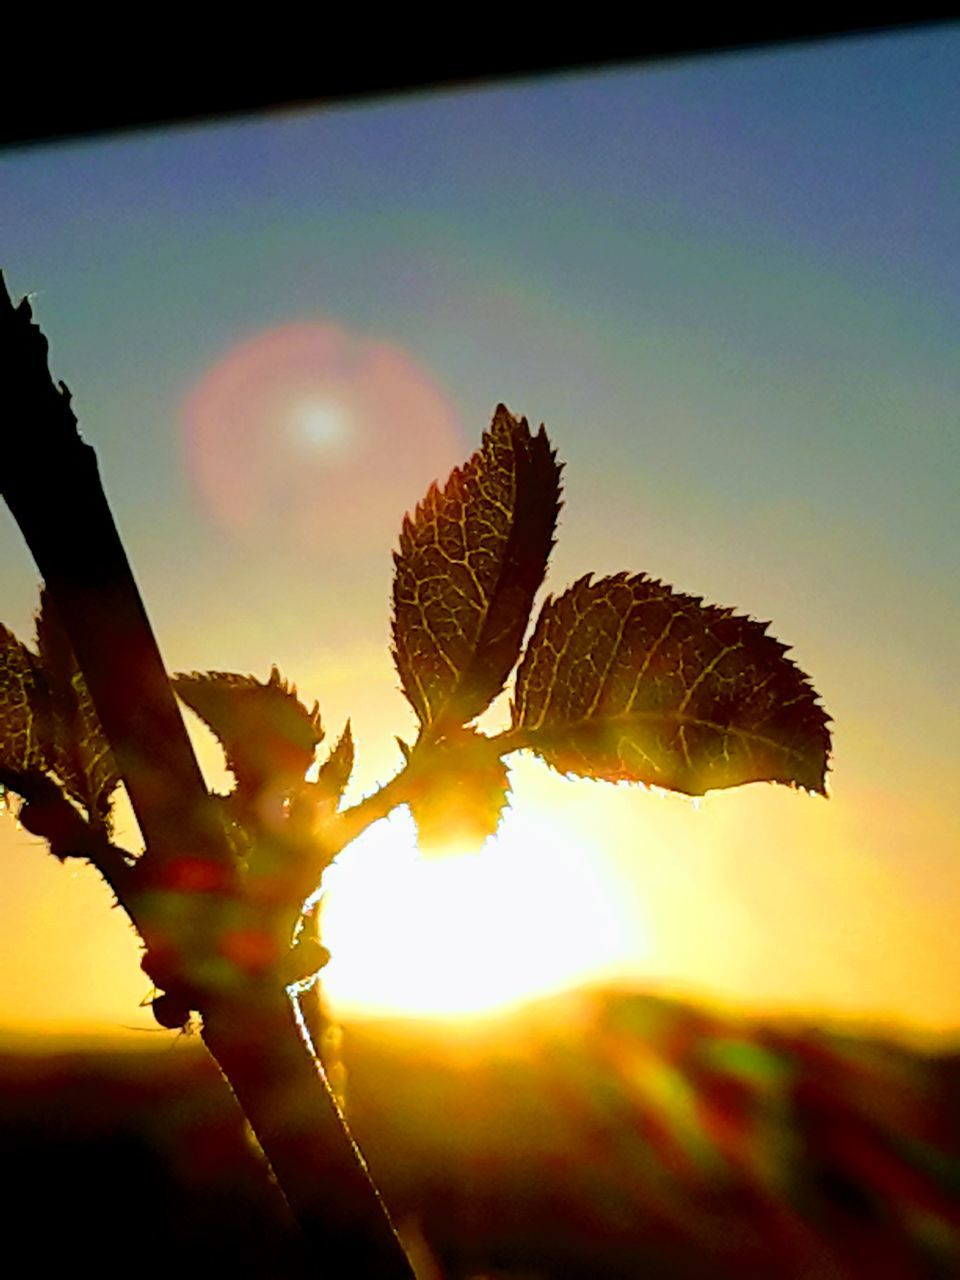 leaf, sunset, nature, sun, growth, outdoors, sunlight, beauty in nature, sky, plant, close-up, day, no people, tree